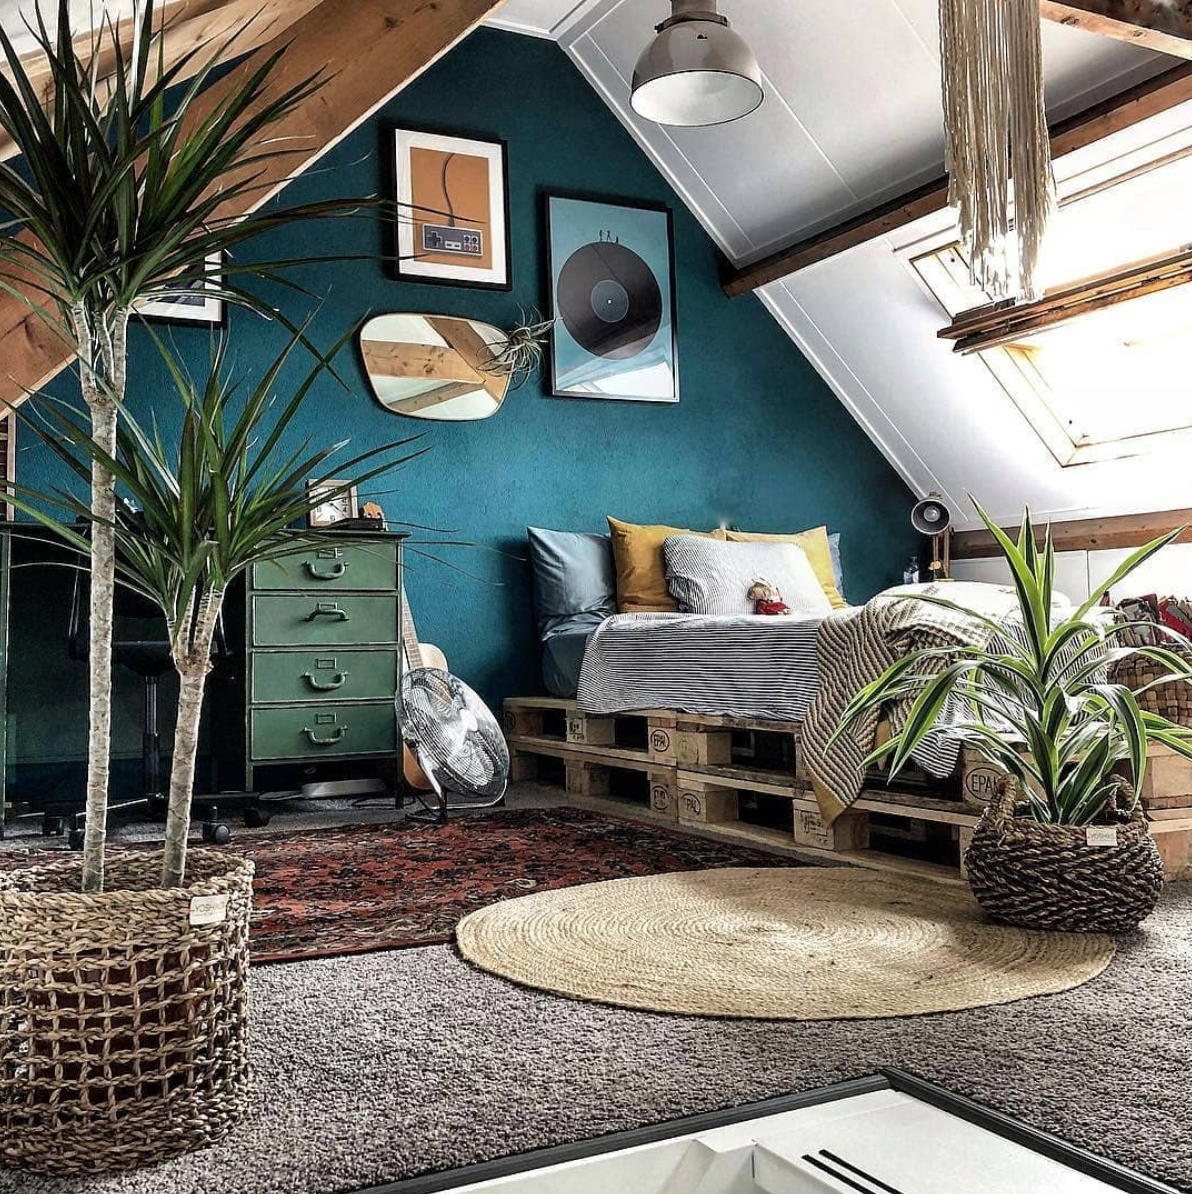 Attic Bedroom Ideas Inspiration For Slanted Ceilings And Interesting Entries Vintage Bedroom Decor Bedroom Vintage Vintage Bedroom Styles